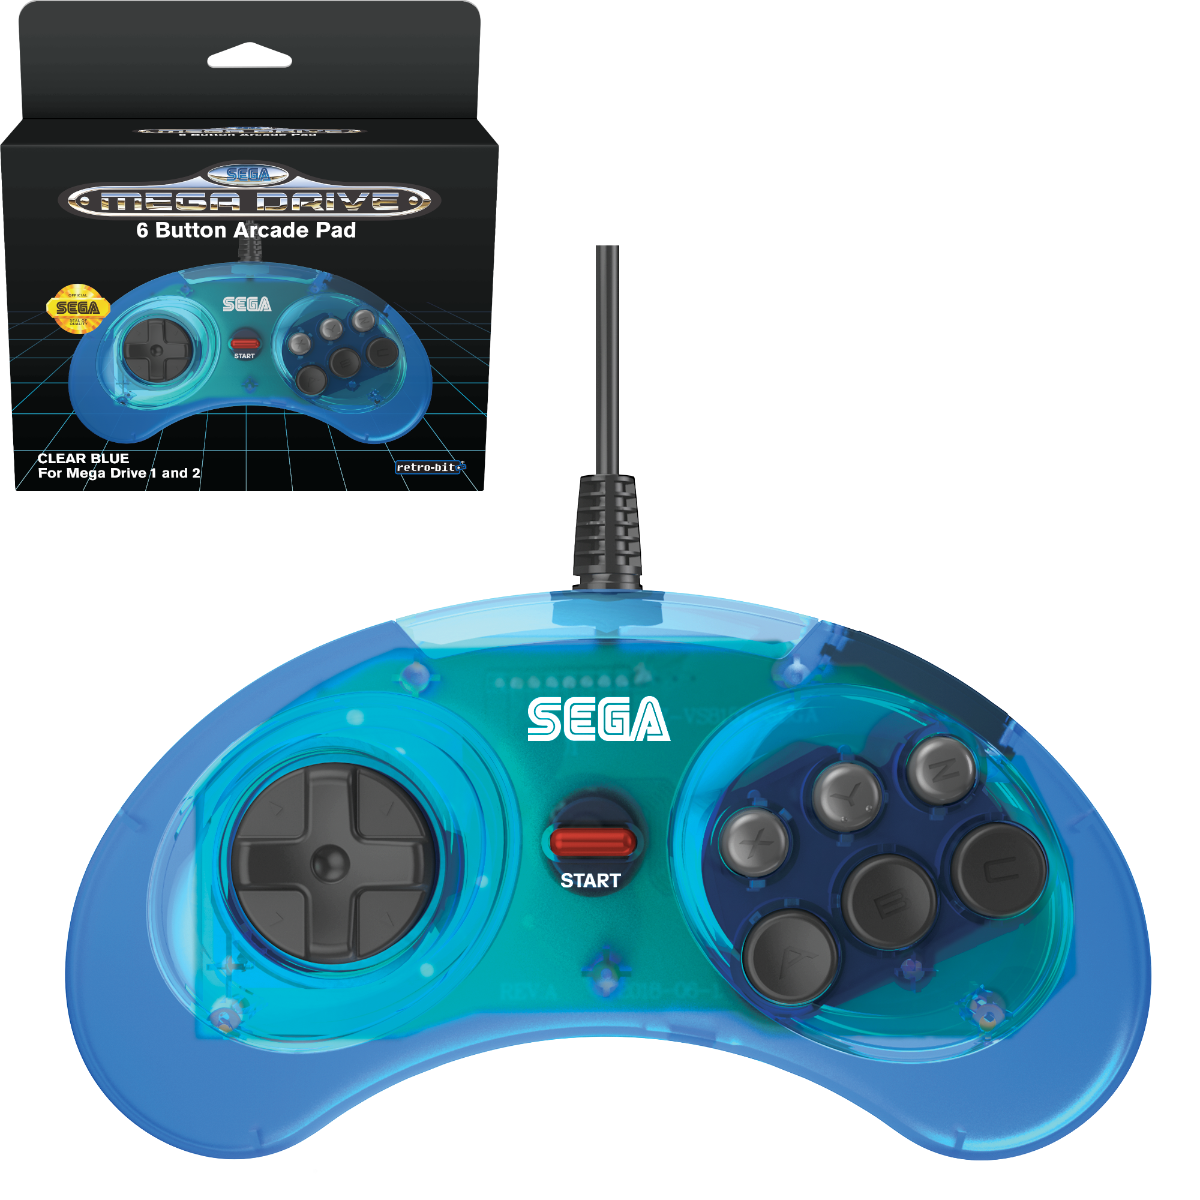 SEGA, Mega Drive, Arcade Pad, 6 Button, Clear Blue, Original